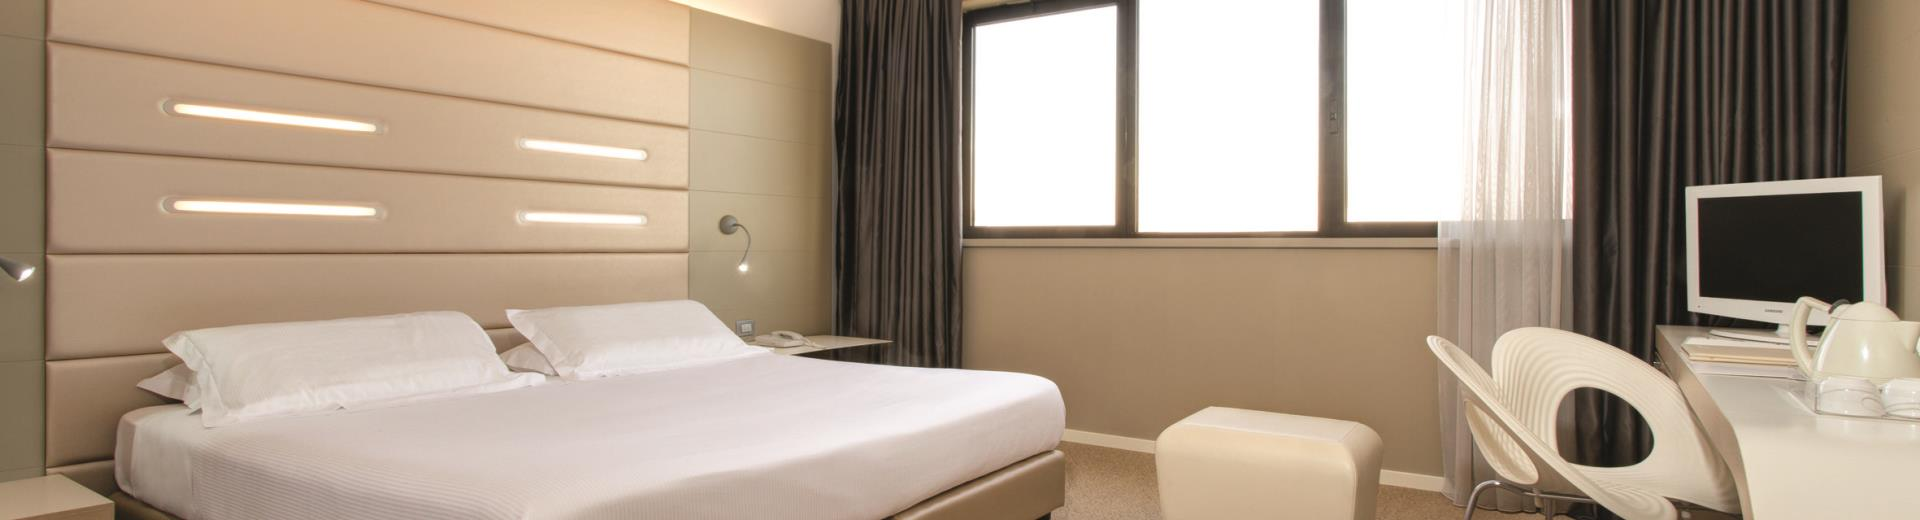 Standard Room - Tower Hotel Bologna 4 star